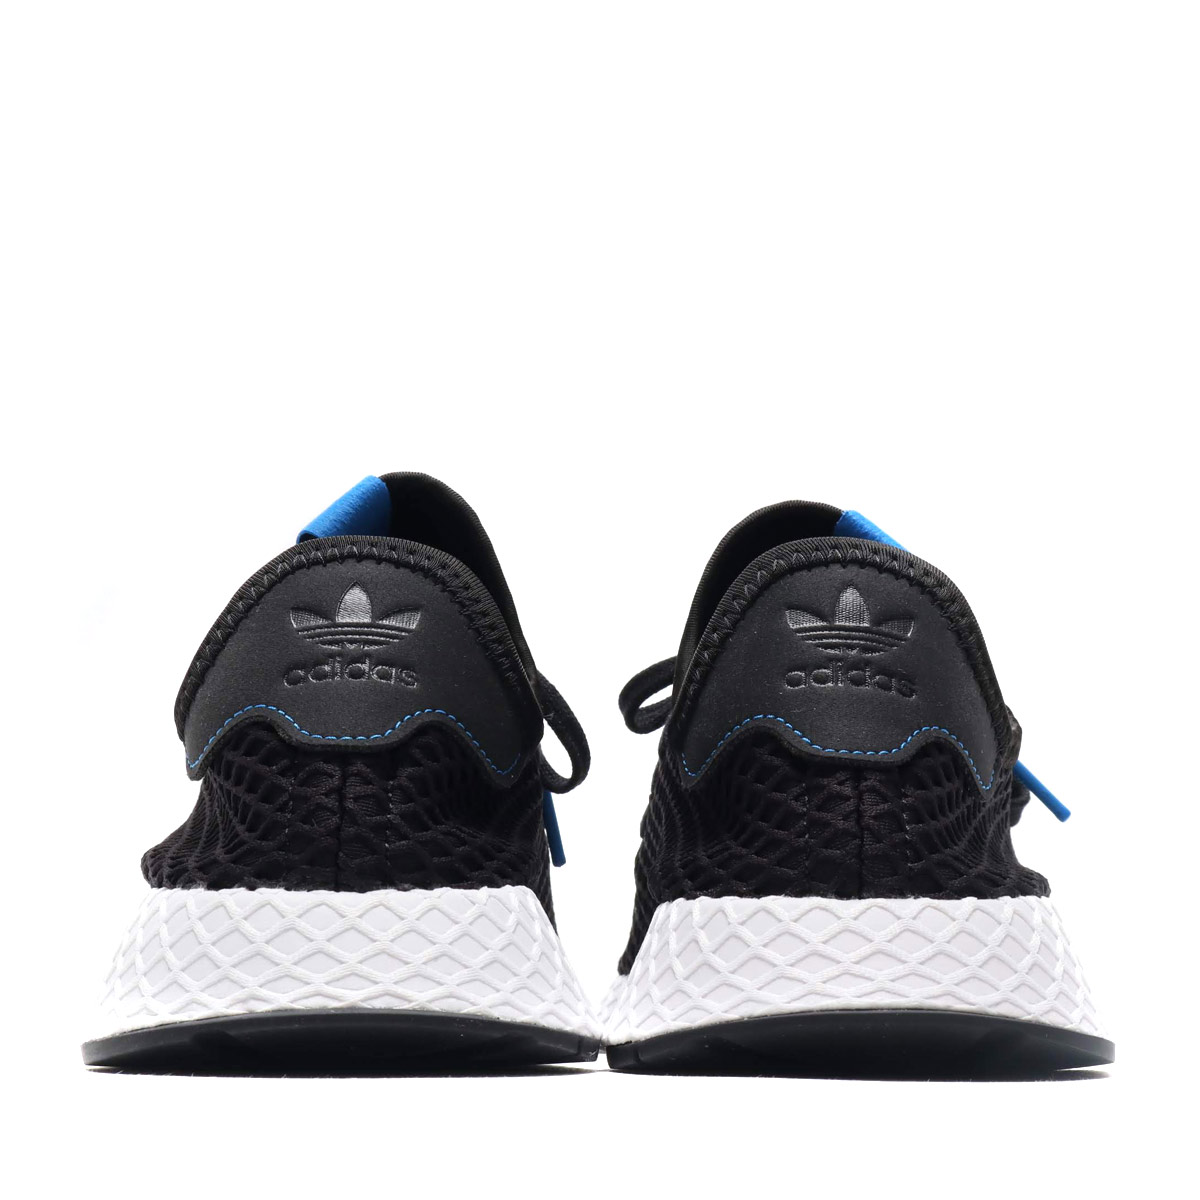 4ec23ed6846b4 adidas Originals DEERUPT RUNNER AT (アディダスオリジナルスディラプトランナー AT) core black    core black   Bluebird 18FW-I